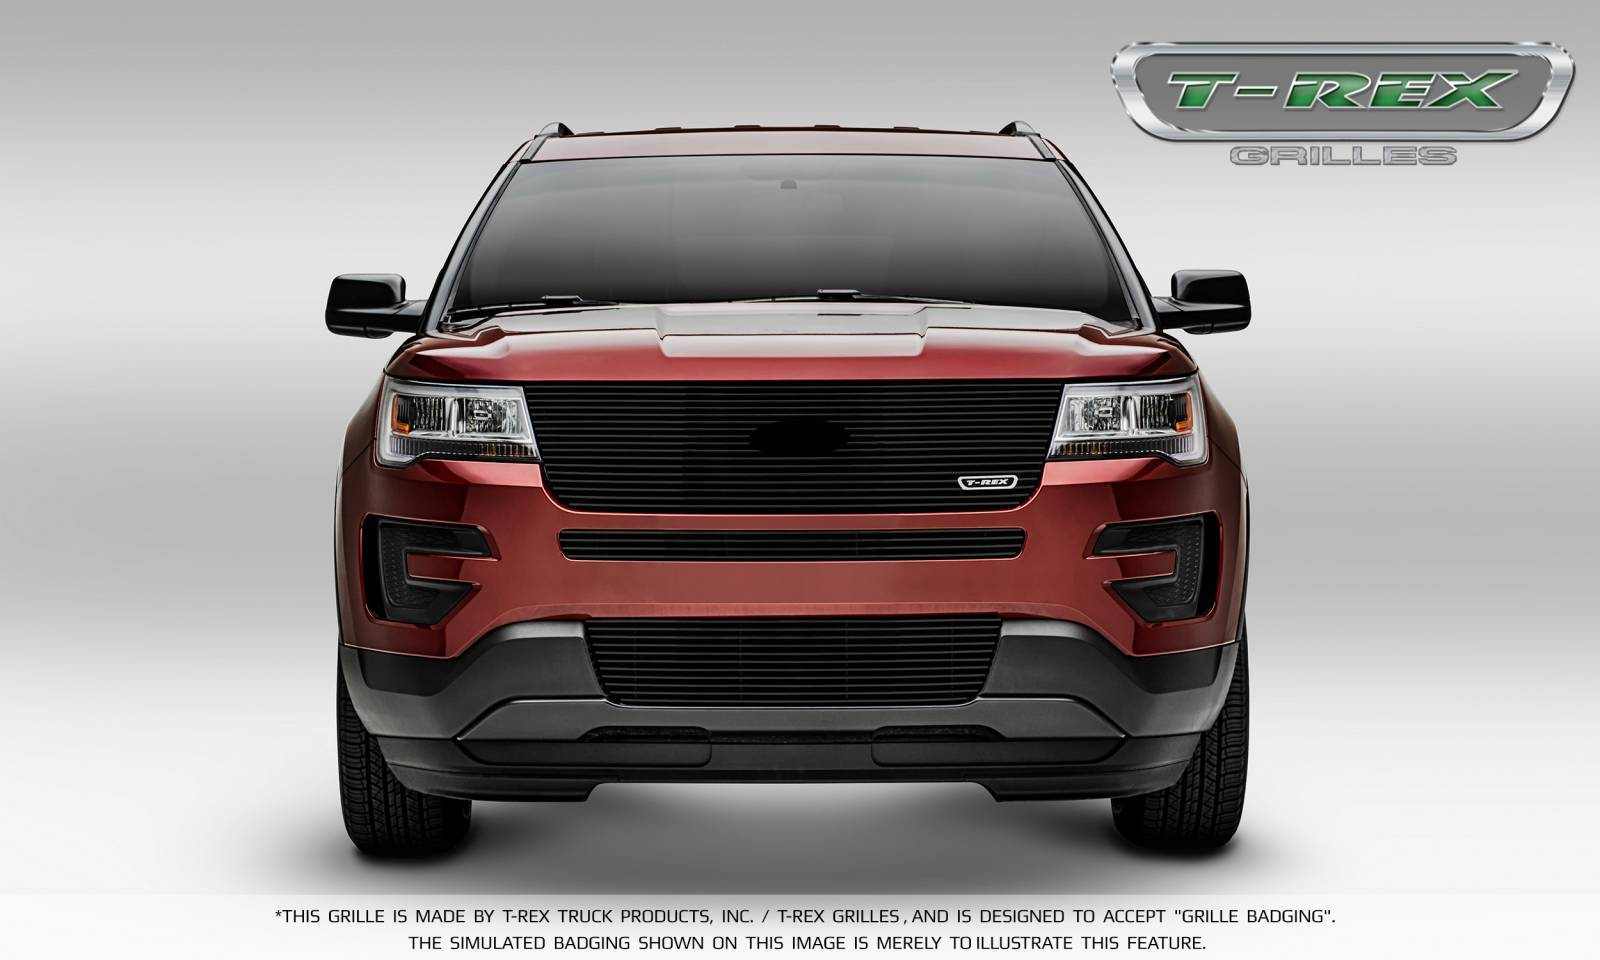 T rex ford explorer billet 2 piece overlay bumper grille black powder coated finish pt 25664b